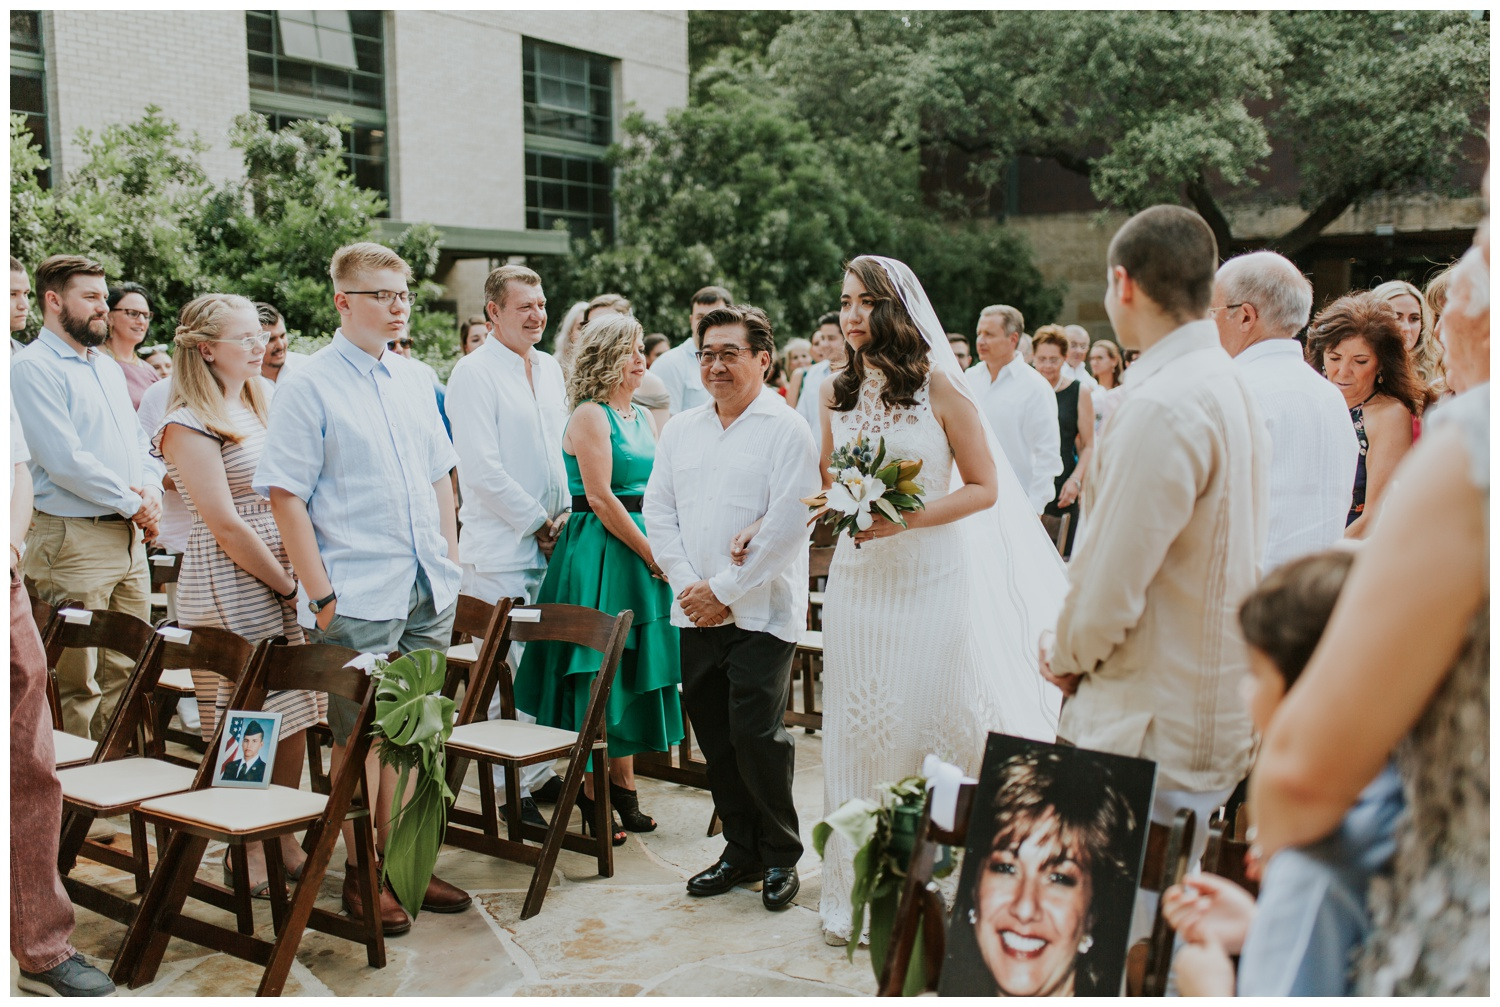 Ana + Sean || Jack Guenther Pavilion at the Briscoe Wedding San Antonio, Texas (Joshua and Parisa – Contista Productions)_0061.jpg